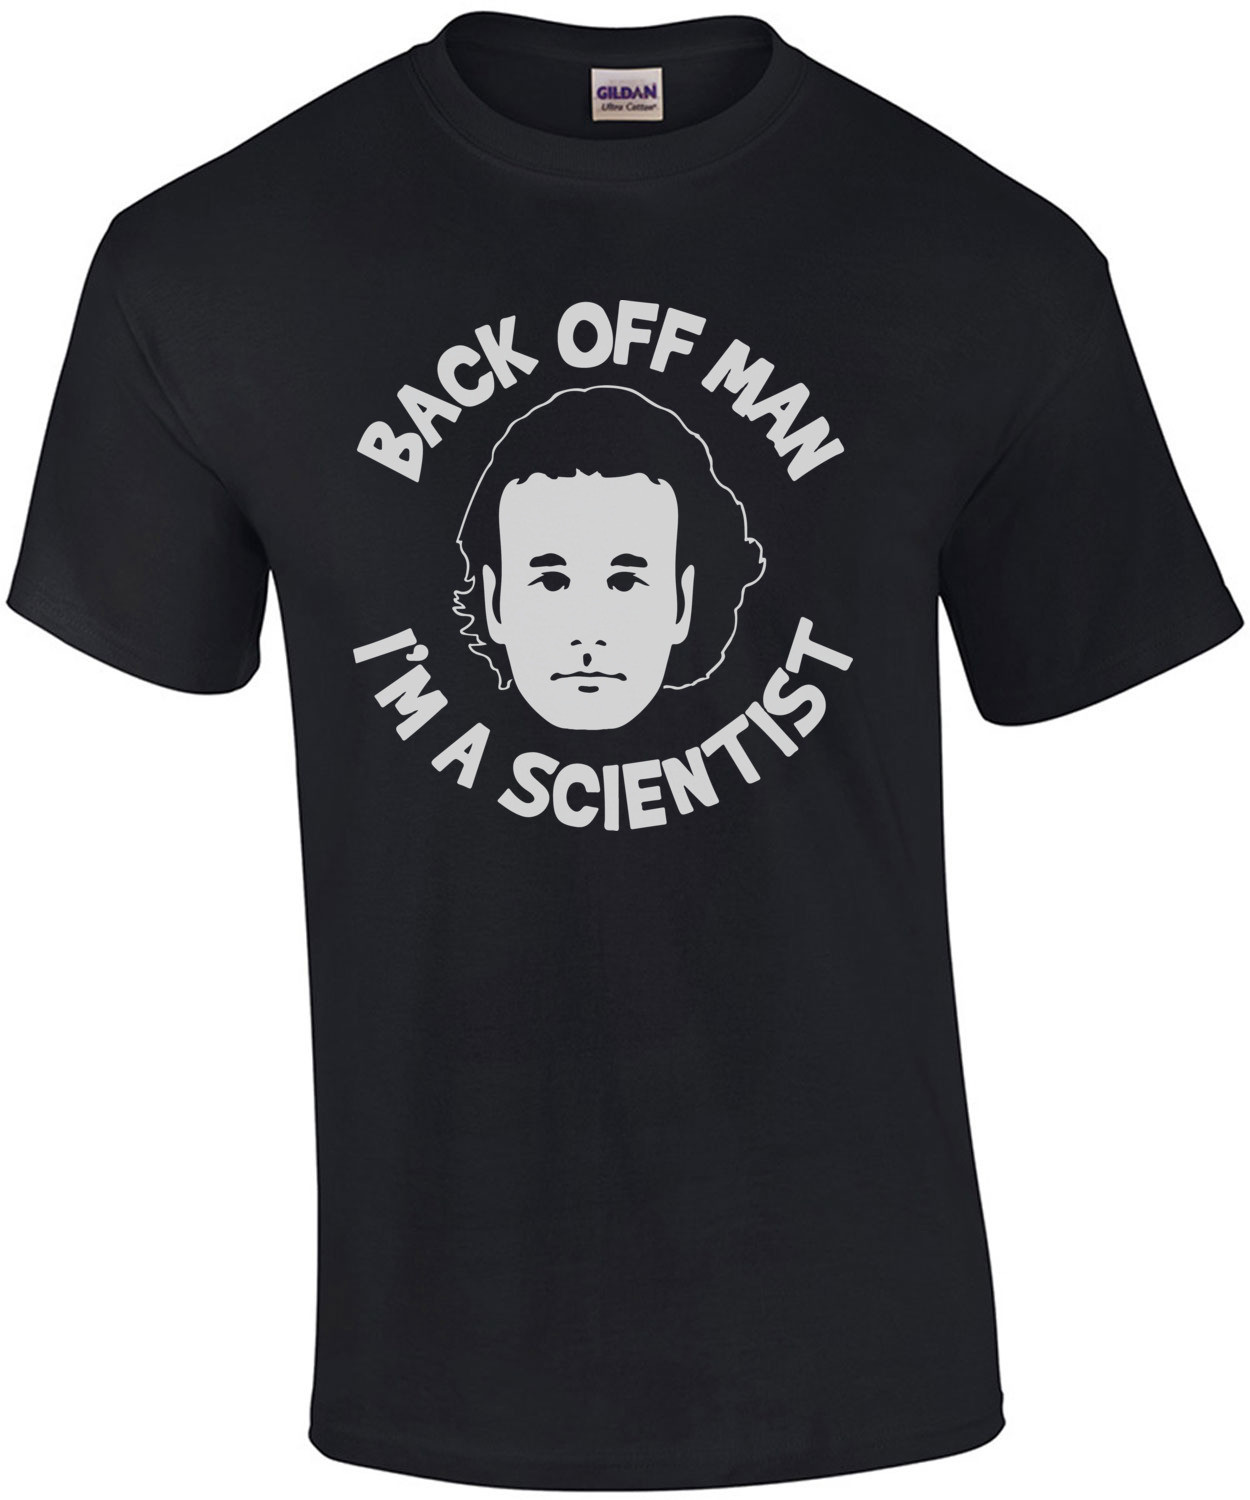 Back Off Man - I'm A Scientist - Bill Murray Ghostbusters